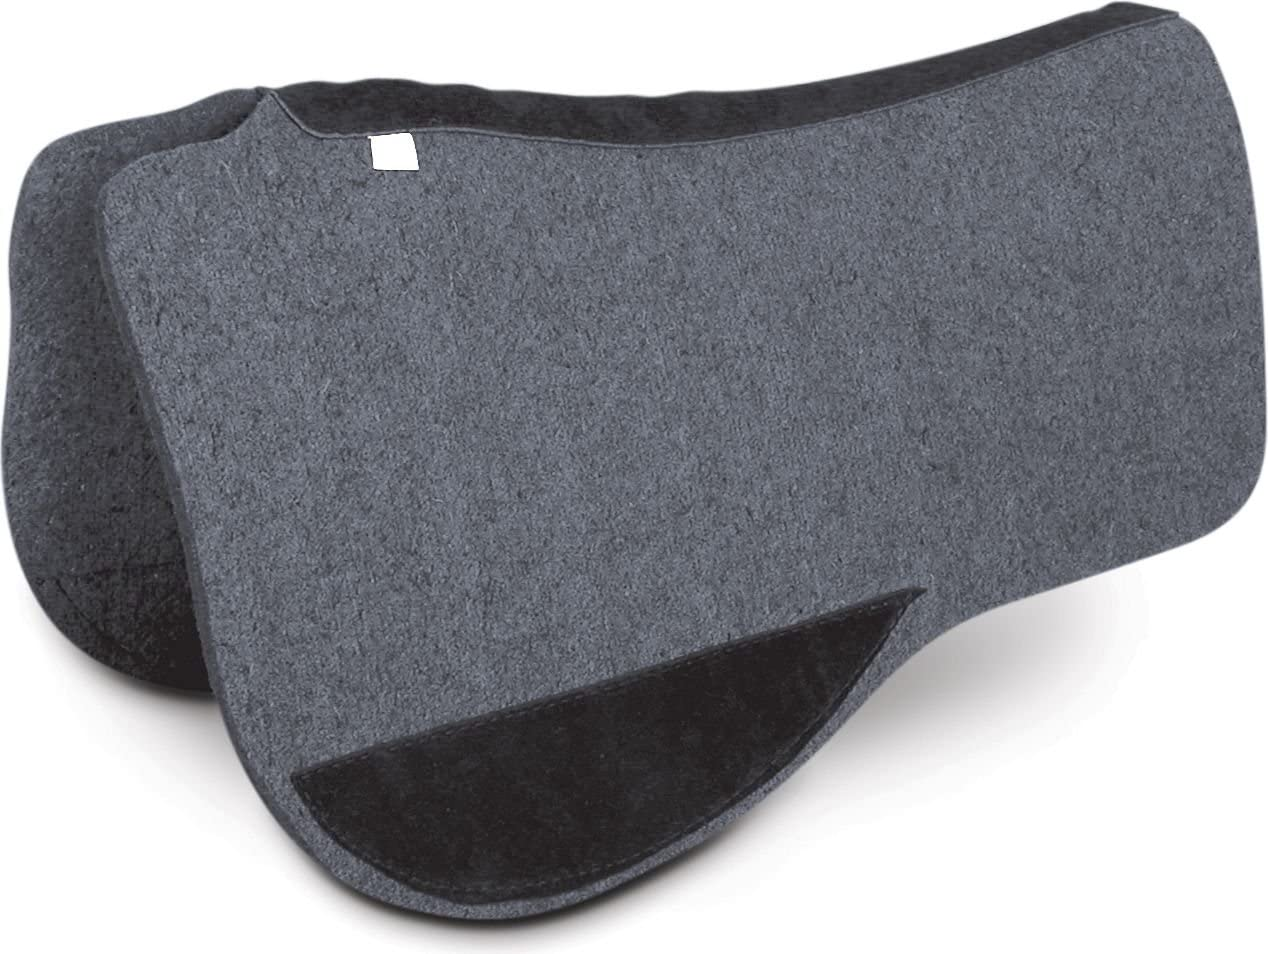 Tucker Cut Out Full Contour Western Saddle Pad